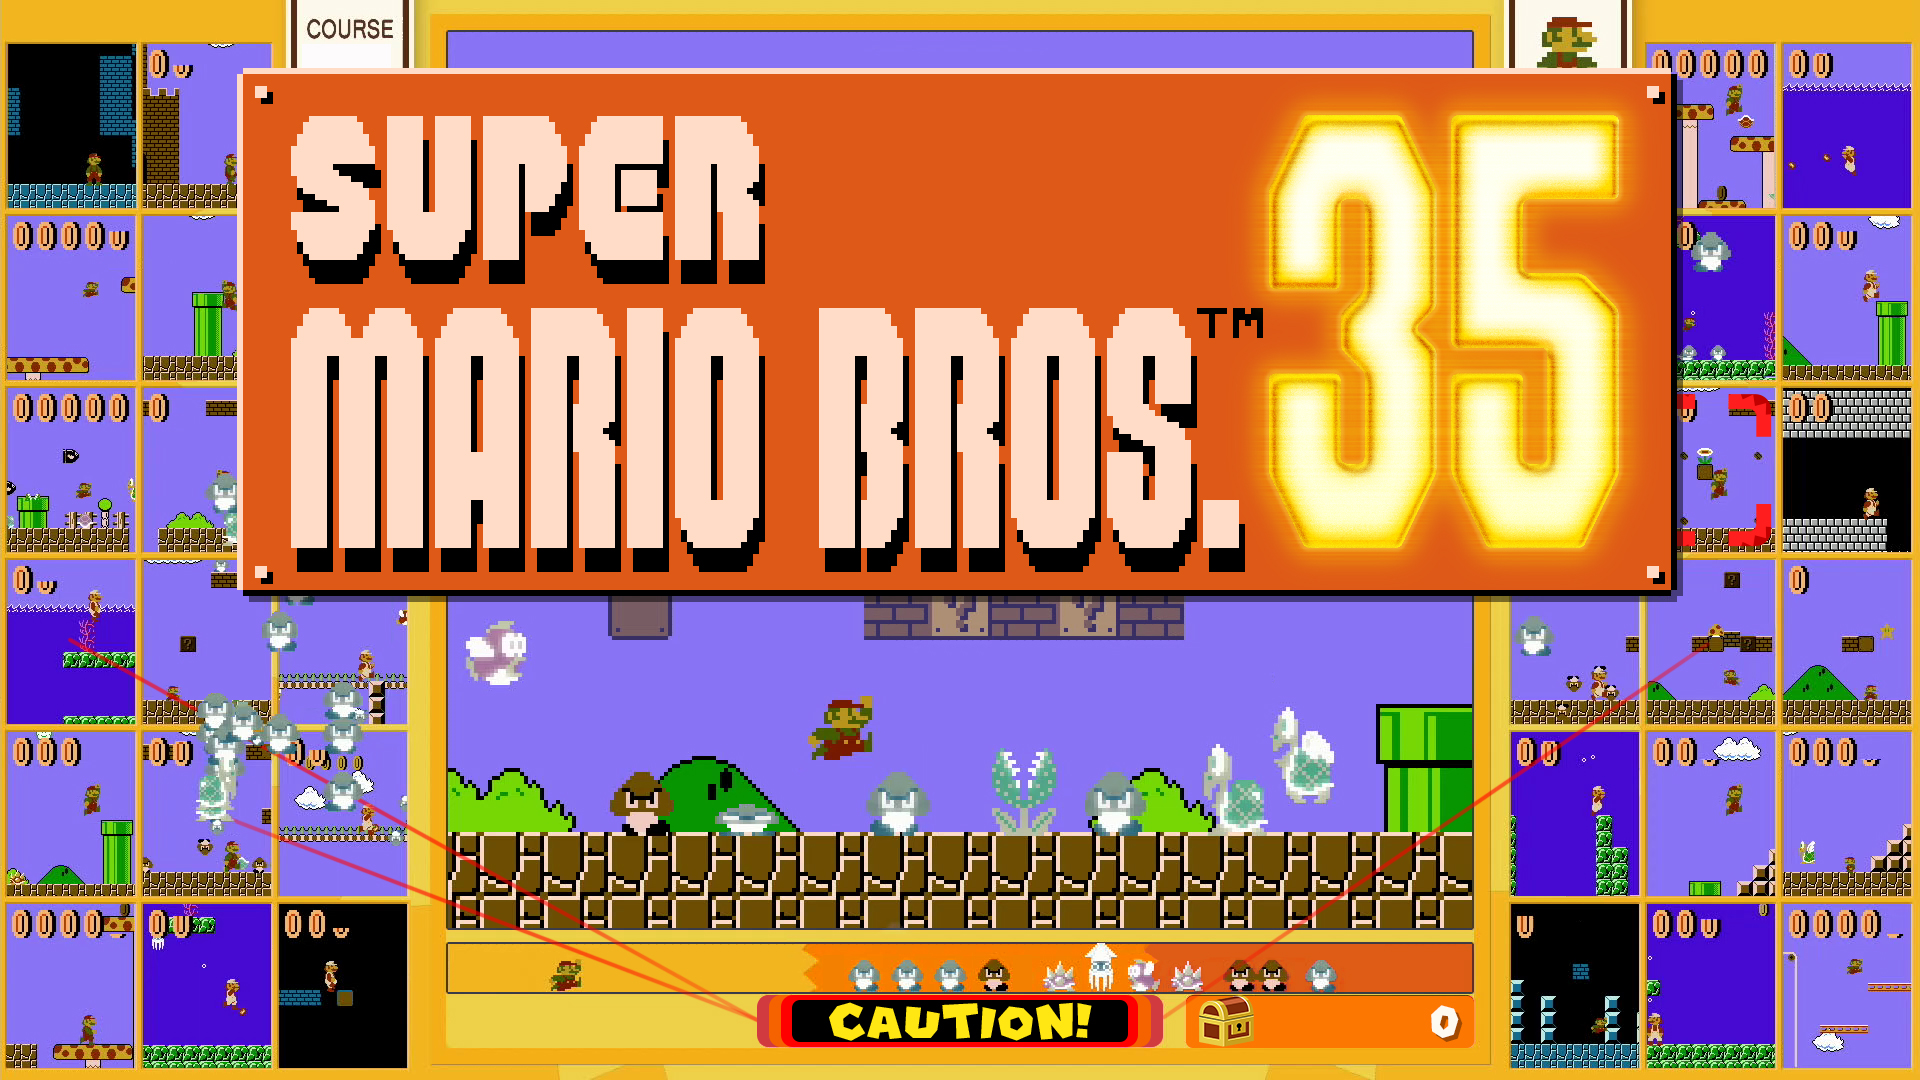 SwitchArcade Round-Up: 'Super Mario Bros. 35', 'Ys Origin', 'Hot Shot Burn', and Today's Other New Releases and Sales